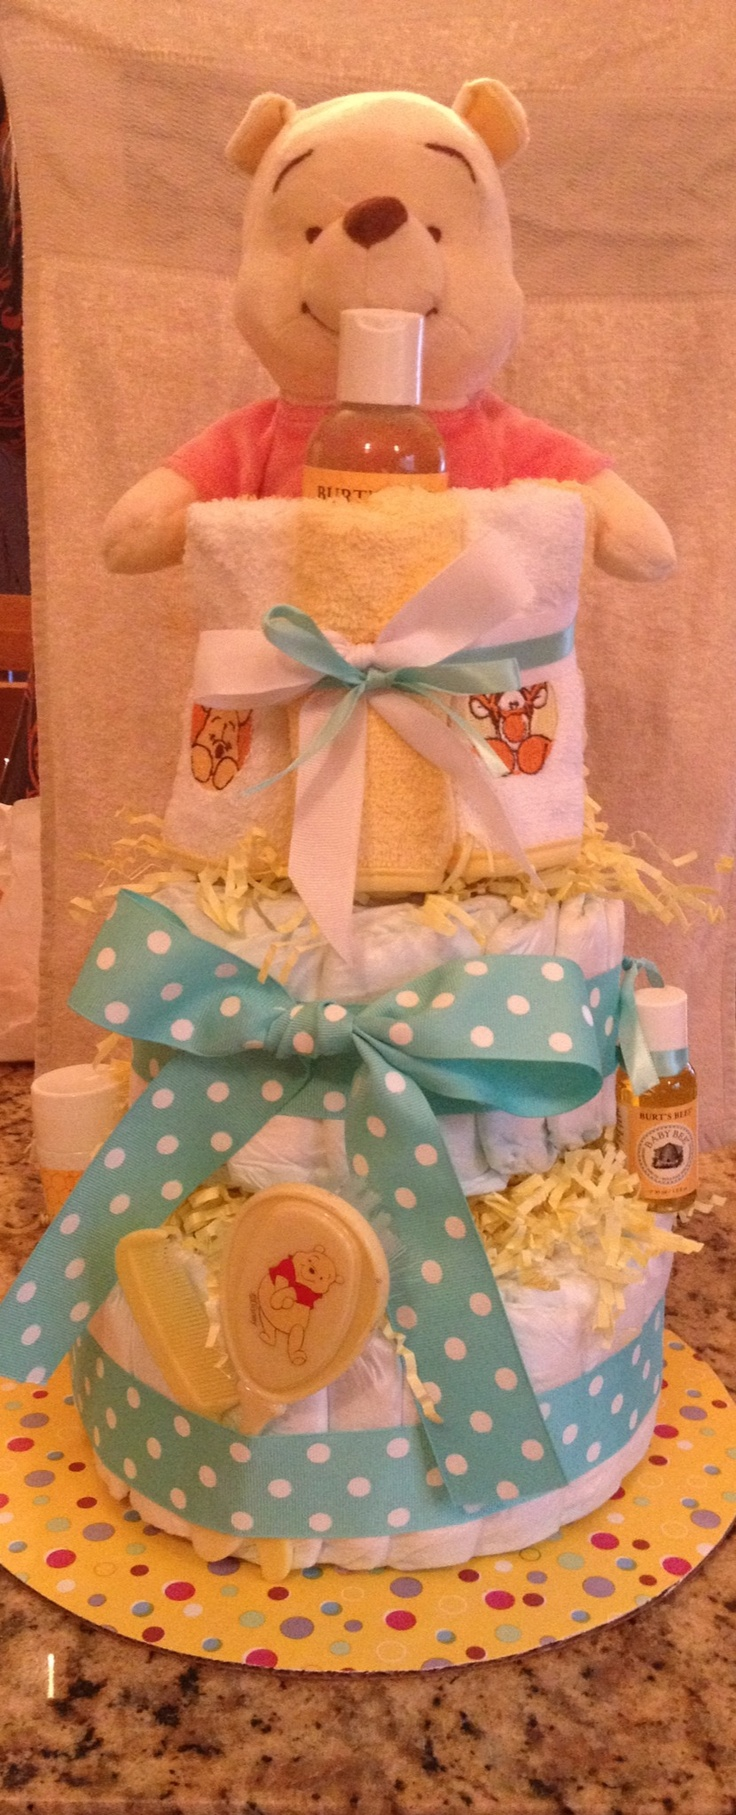 Winnie the pooh baby shower centerpiece ideas 48pc baby shower winnie - Winnie The Pooh Diaper Cake Love The Burt S Bees Products With It Find This Pin And More On Baby Shower Ideas